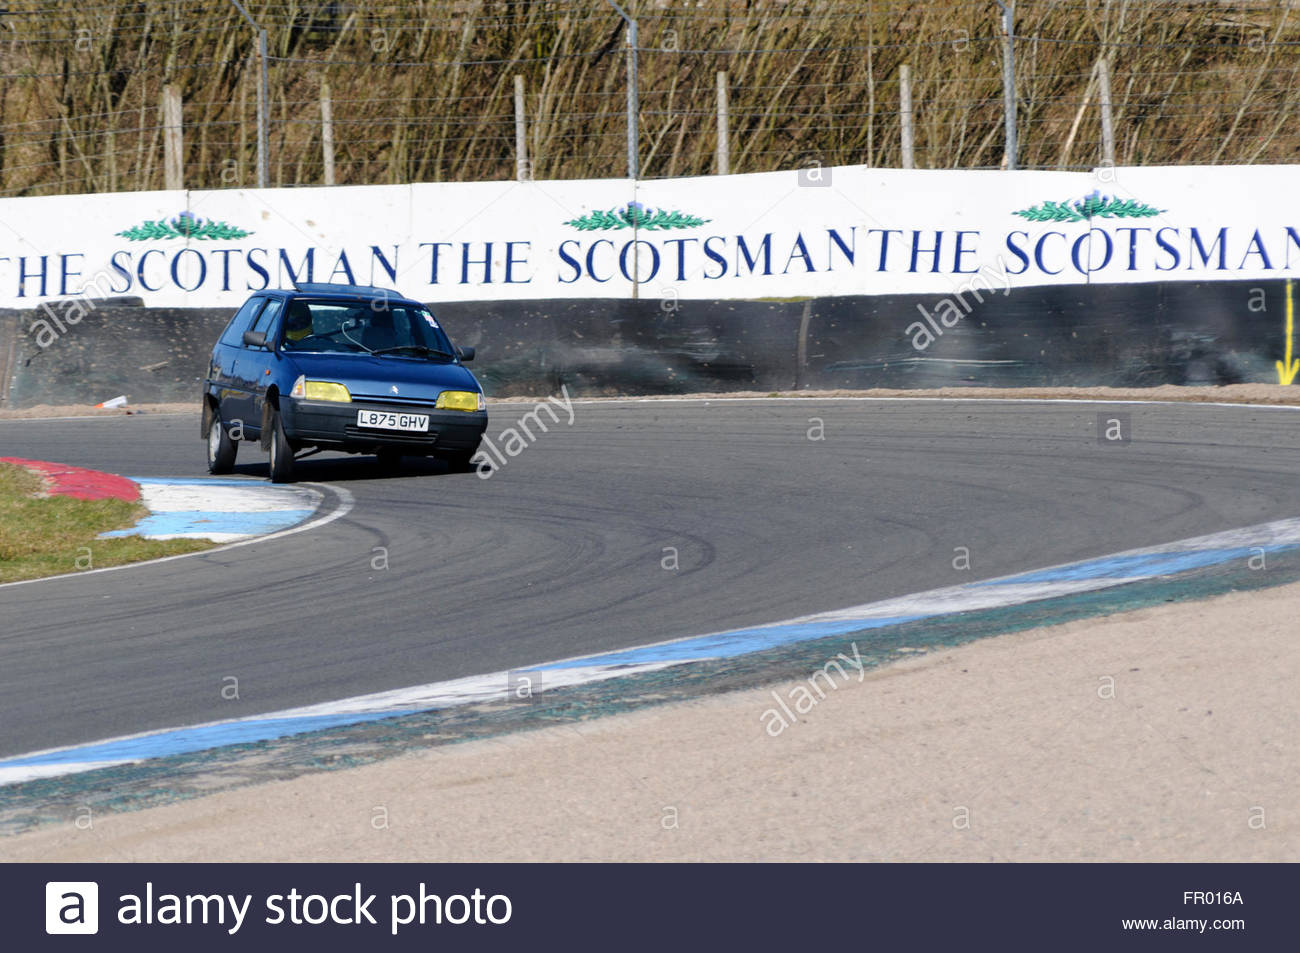 Dunfermline, UK. Sun 20th March, 2016. Cornering on the limit at Scotsmans during the trackday where car enthusiasts - Stock Image